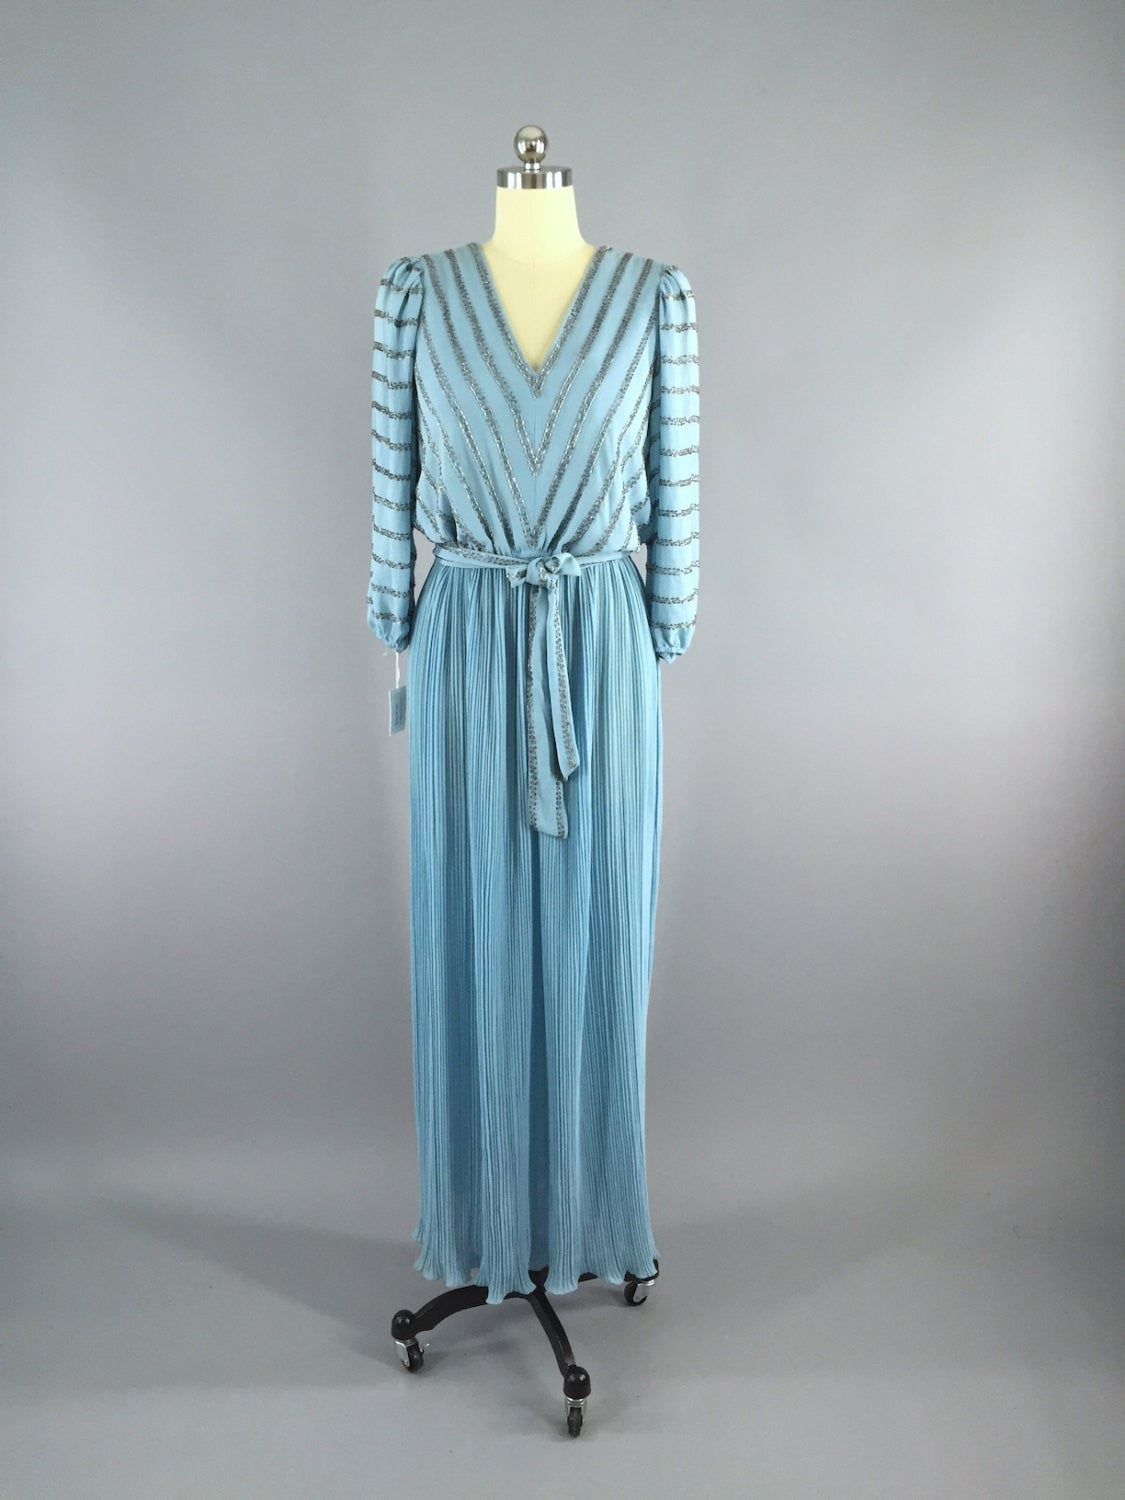 1970s Vintage Beaded Dress /  Mother of the Bride Dress ThisBlueBird